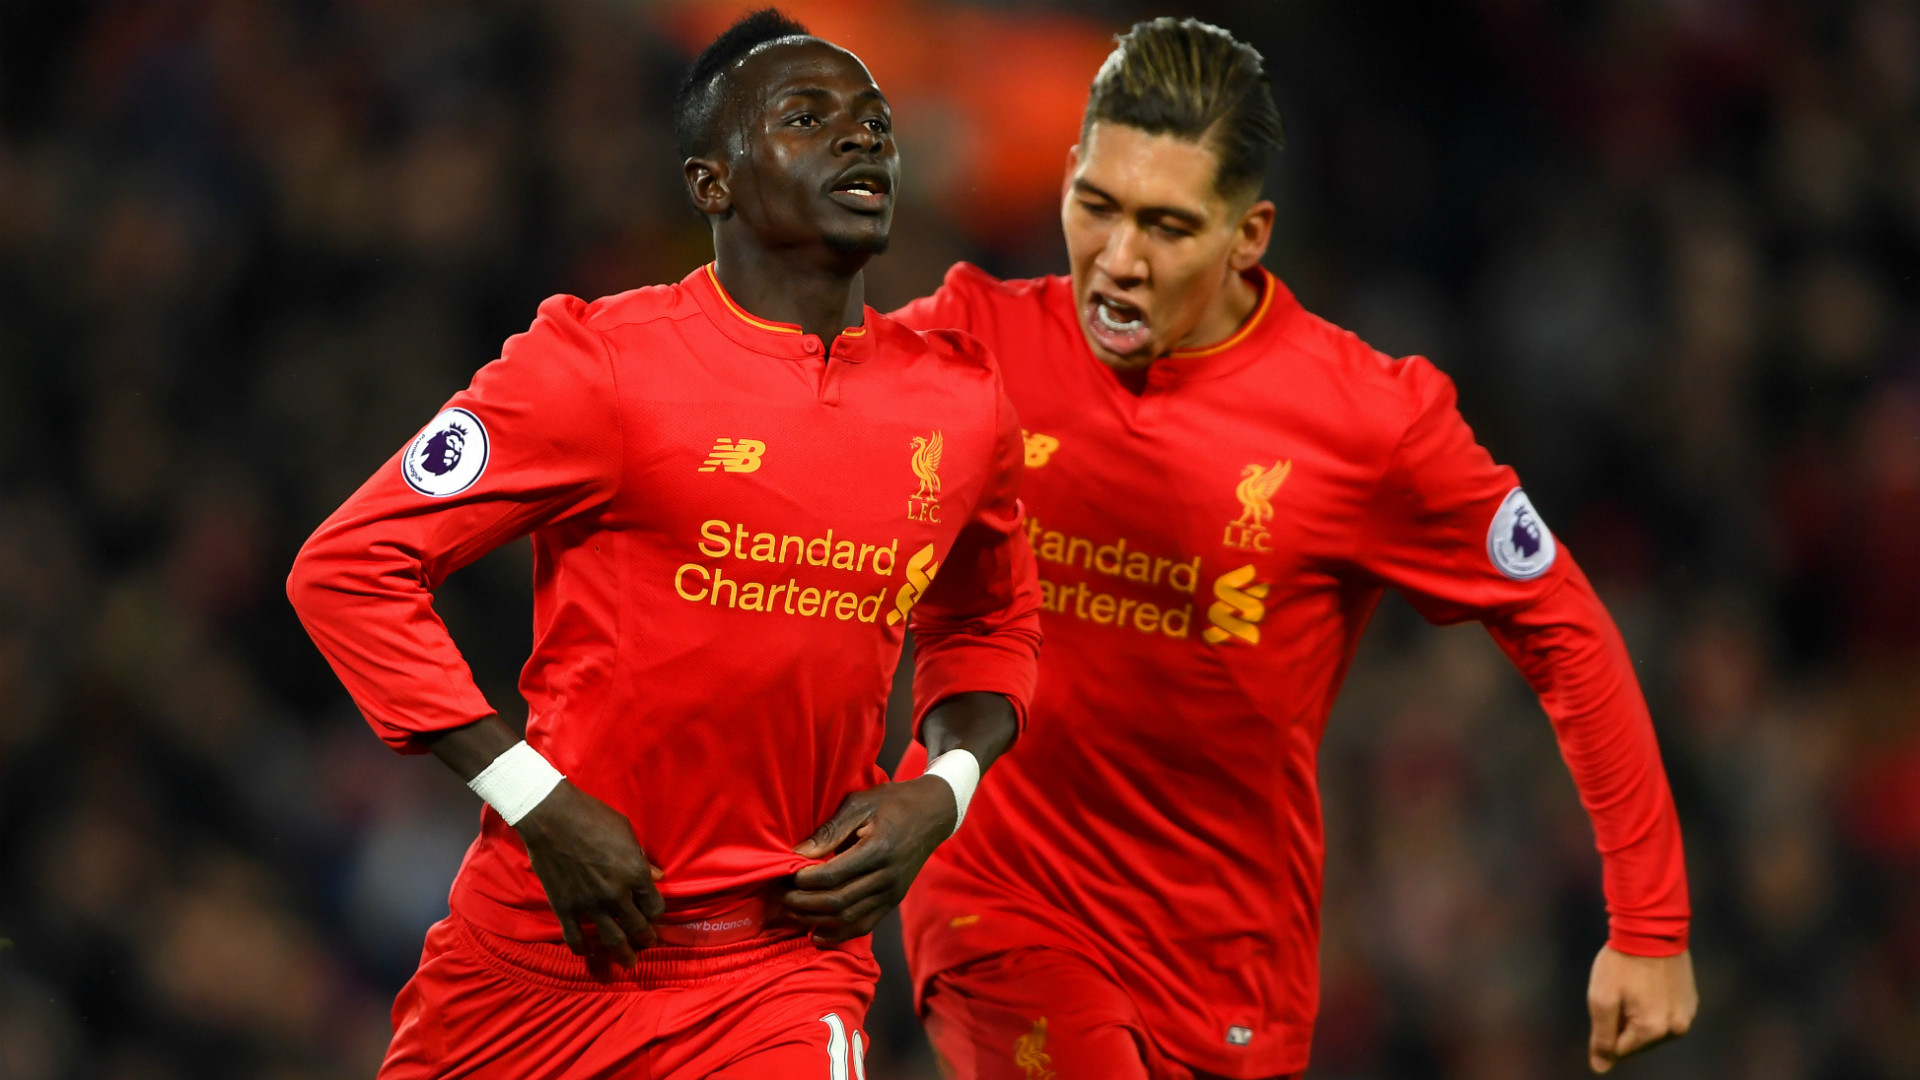 Super Mané Unplayable Sadio strikes fear into Spurs and sparks